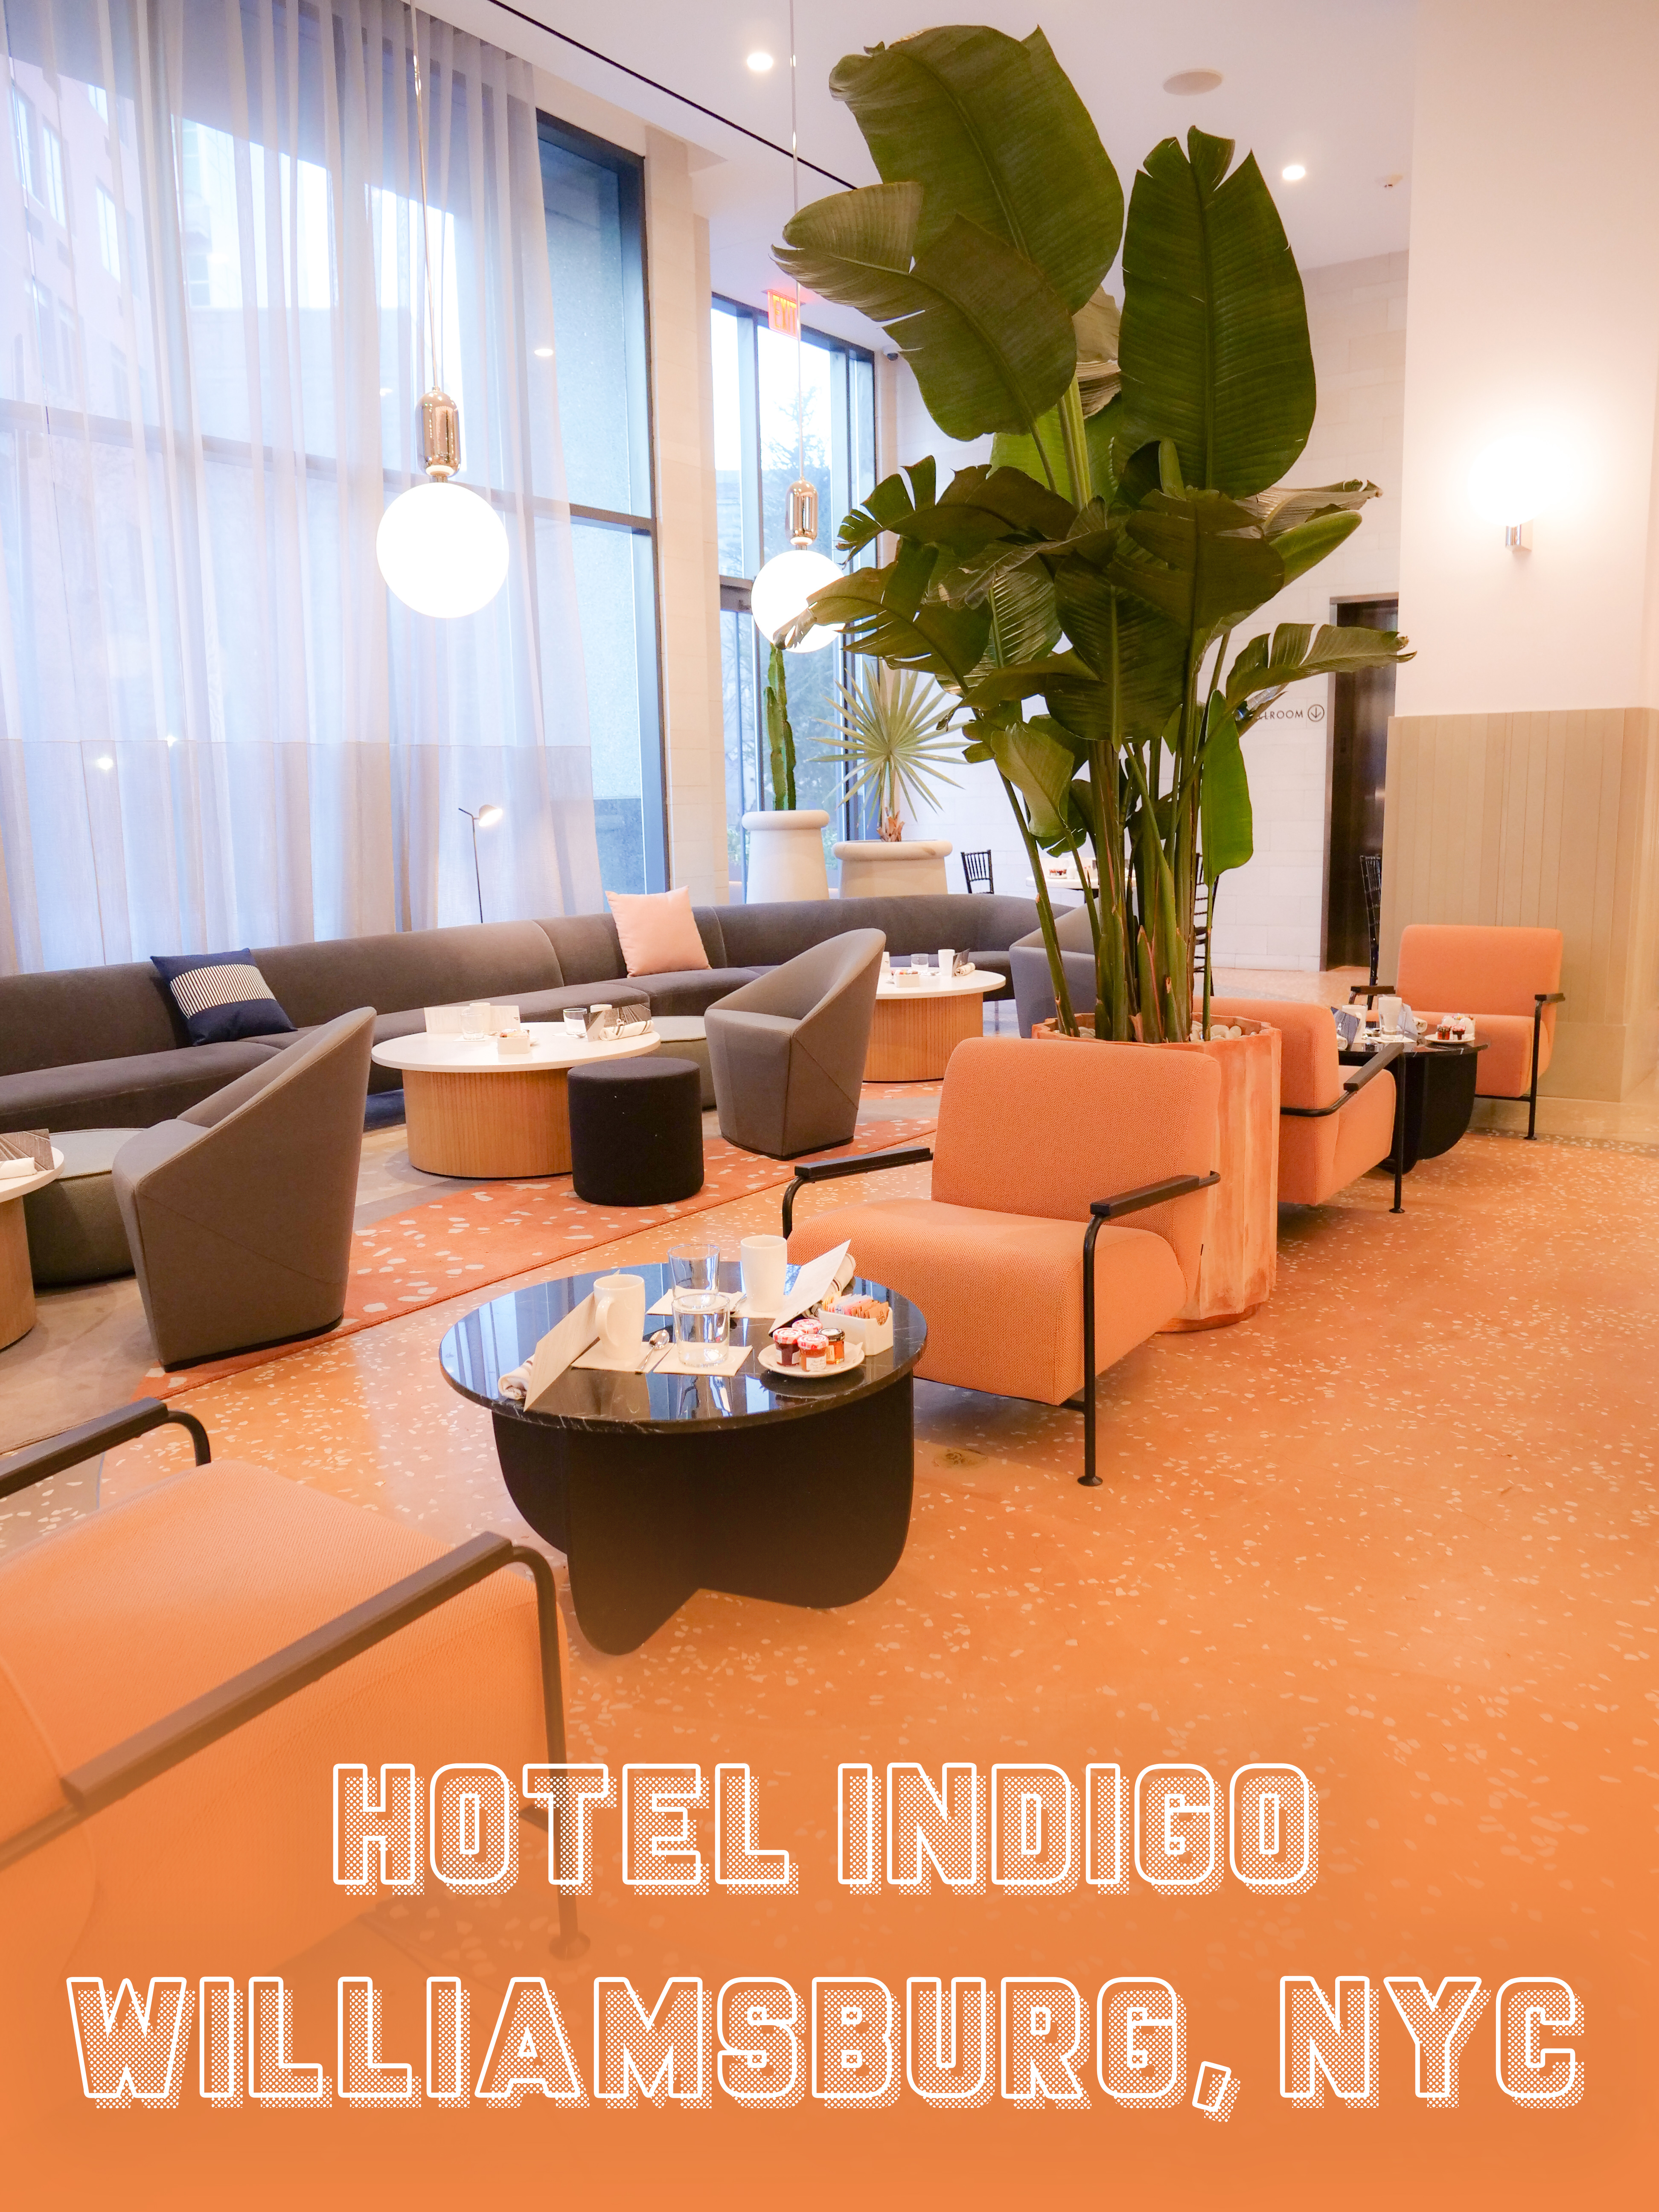 Hotel Indigo Williamsburg Brooklyn NYC